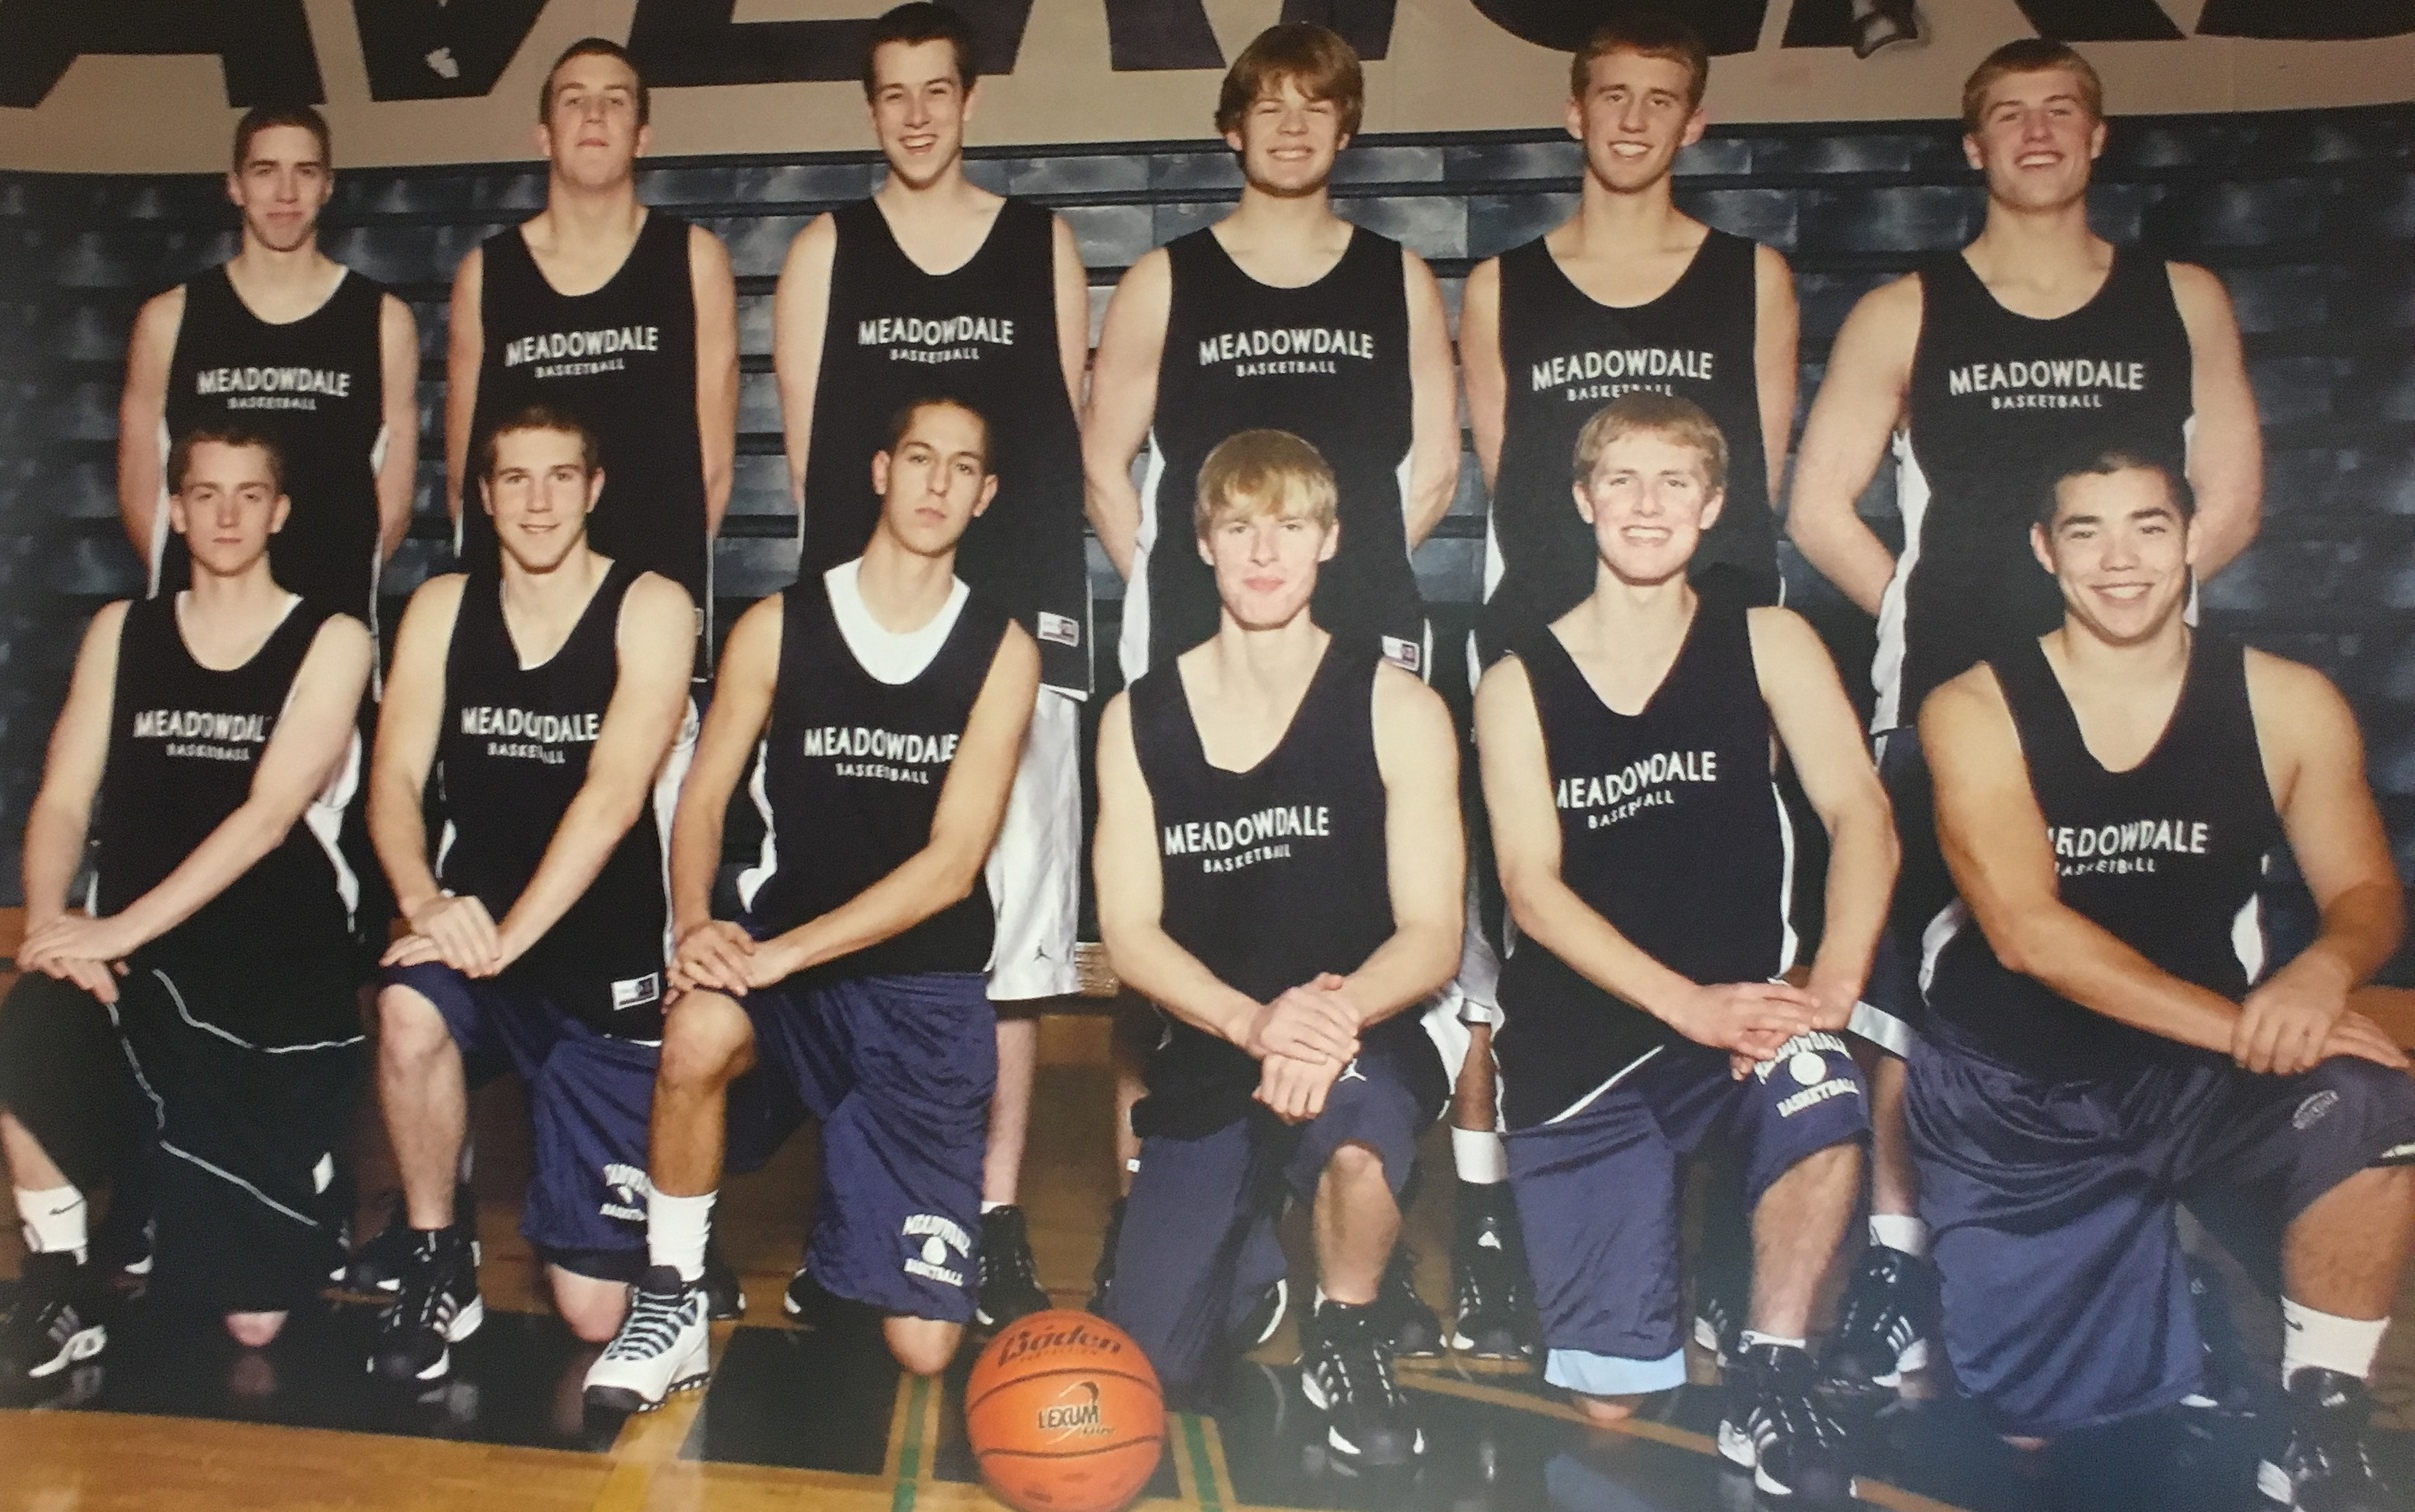 Back Row: Roger O'Neill. Connor Hamlett, Evan Matteson, Sam Epstein, Mike Beeson, Matt Gorman; Front Row: Ryan Church, Jacob Clampitt, Teagan Dooley, Paul Werner, Sam Werner, Connor Nelson